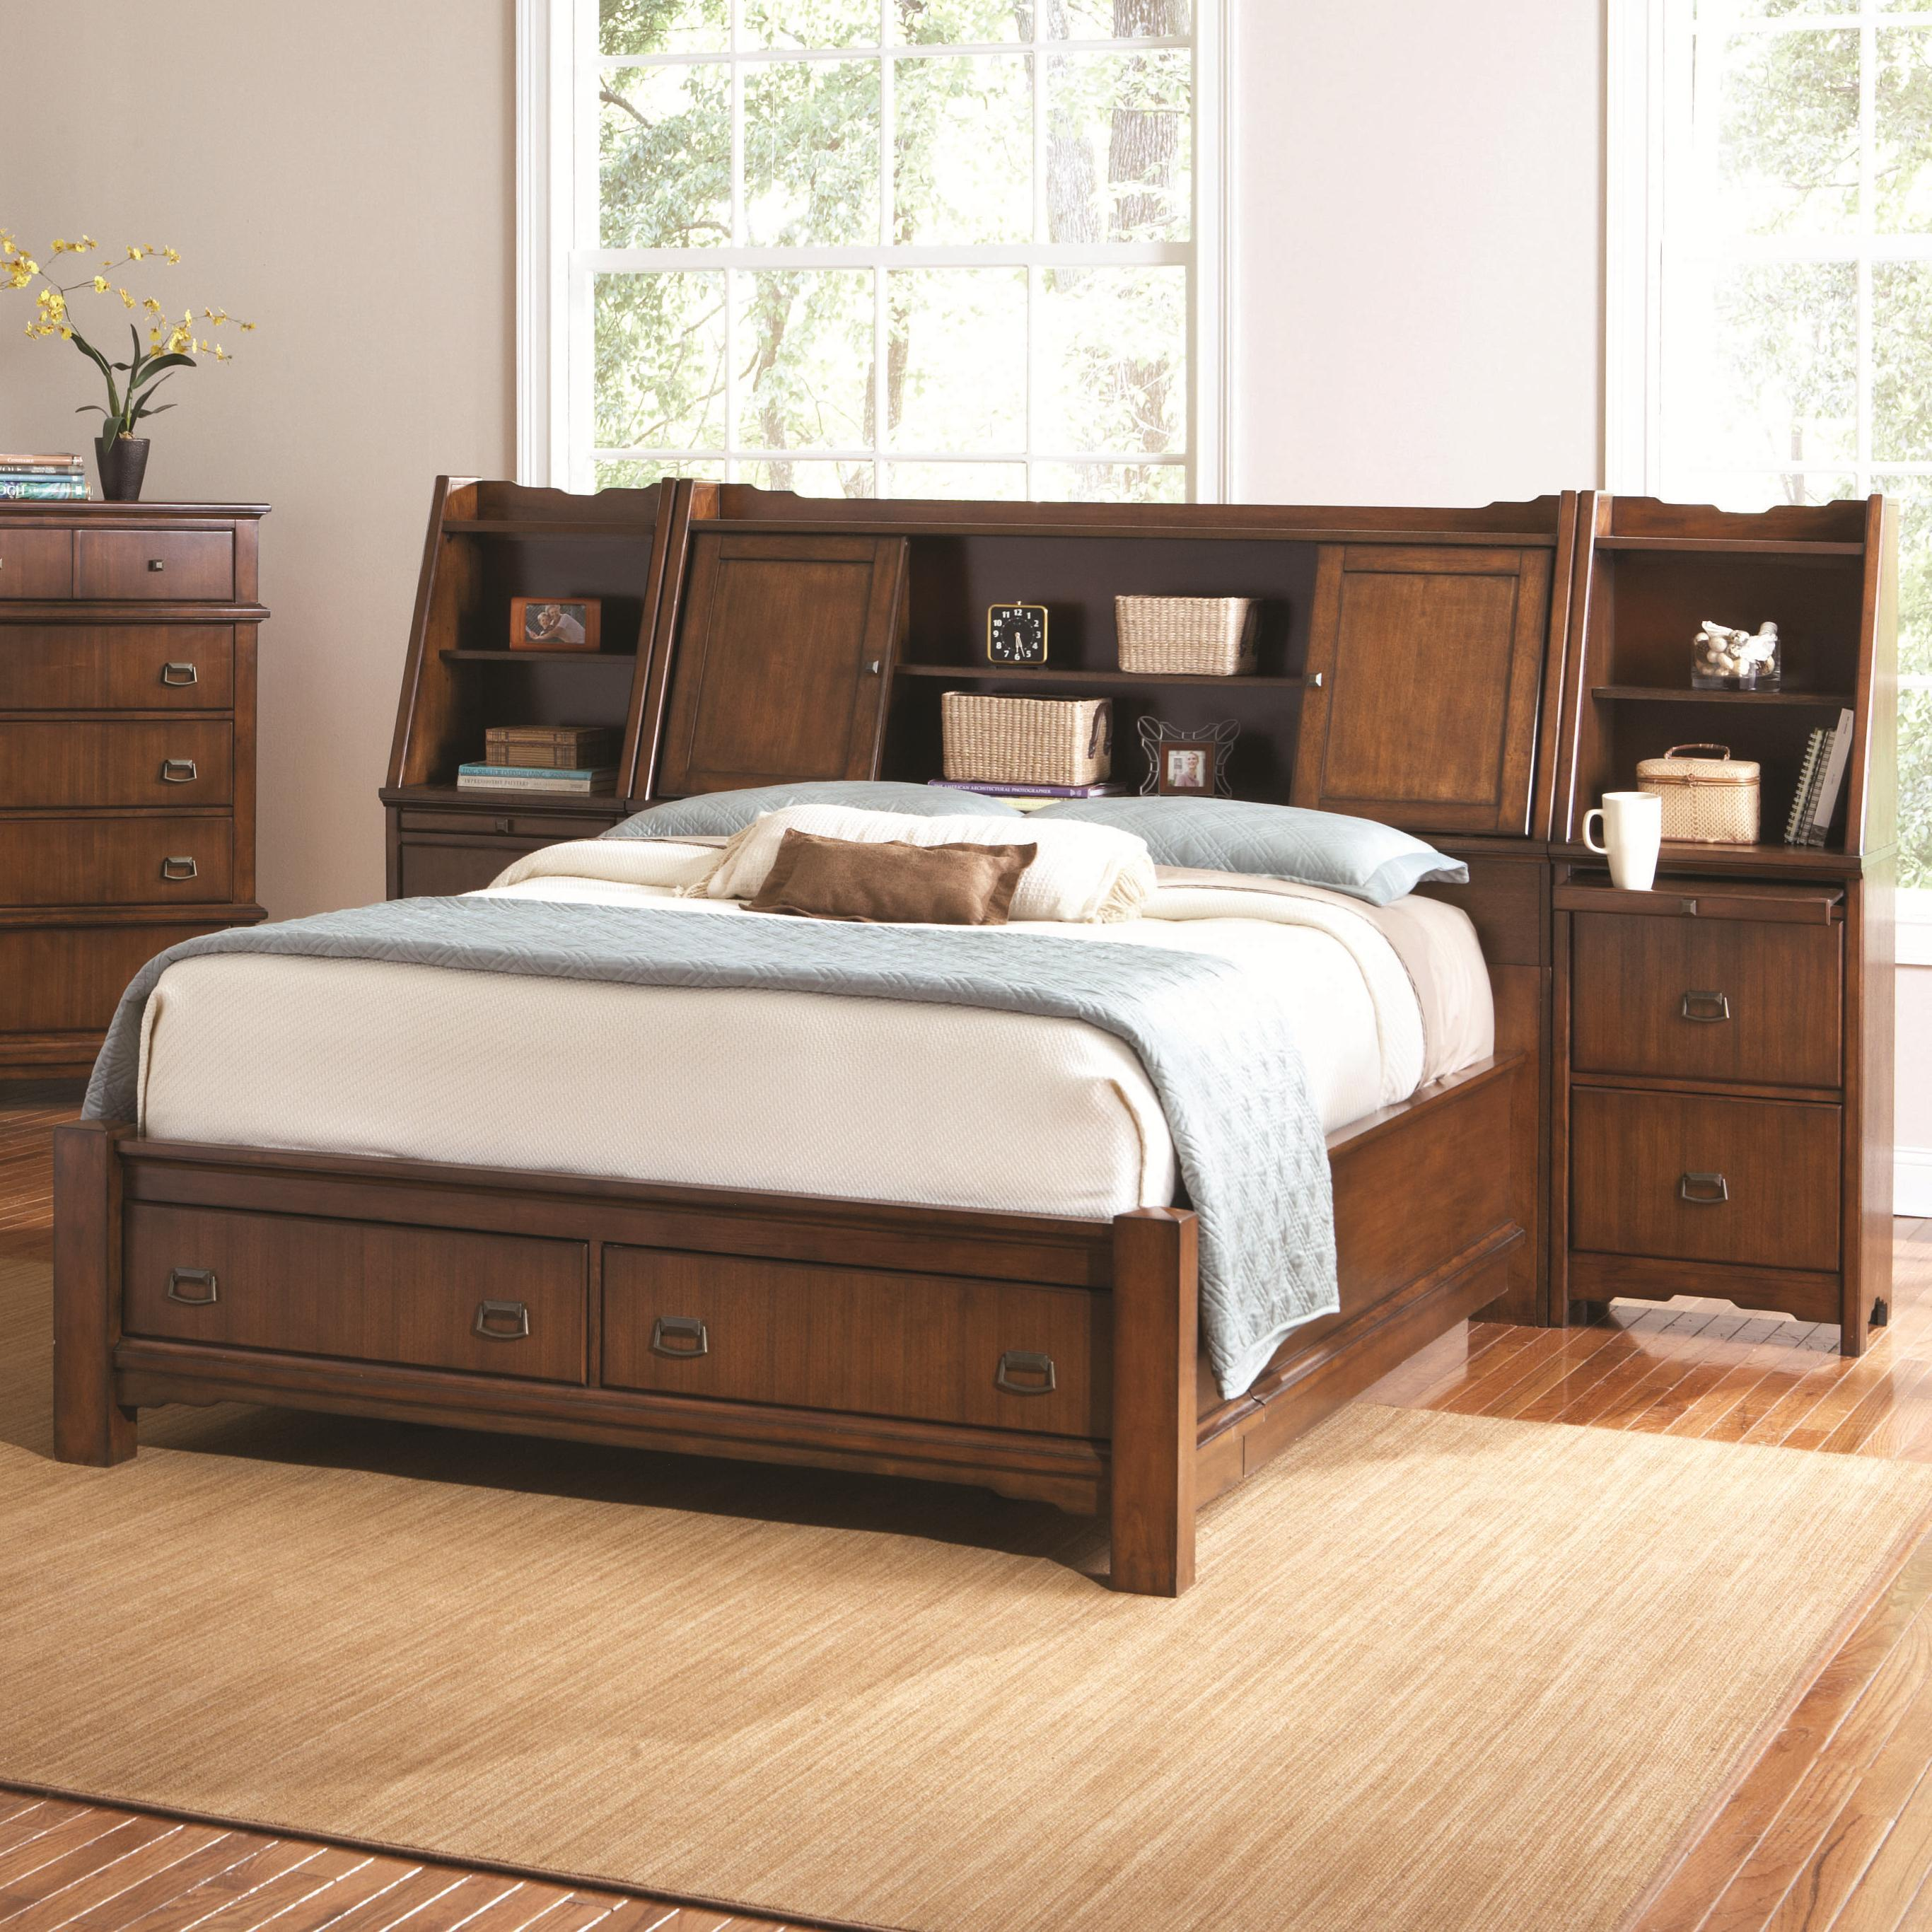 Sonoma valley king wall bed with storage platform lighted bookcase 1000 images about beds amipublicfo Image collections